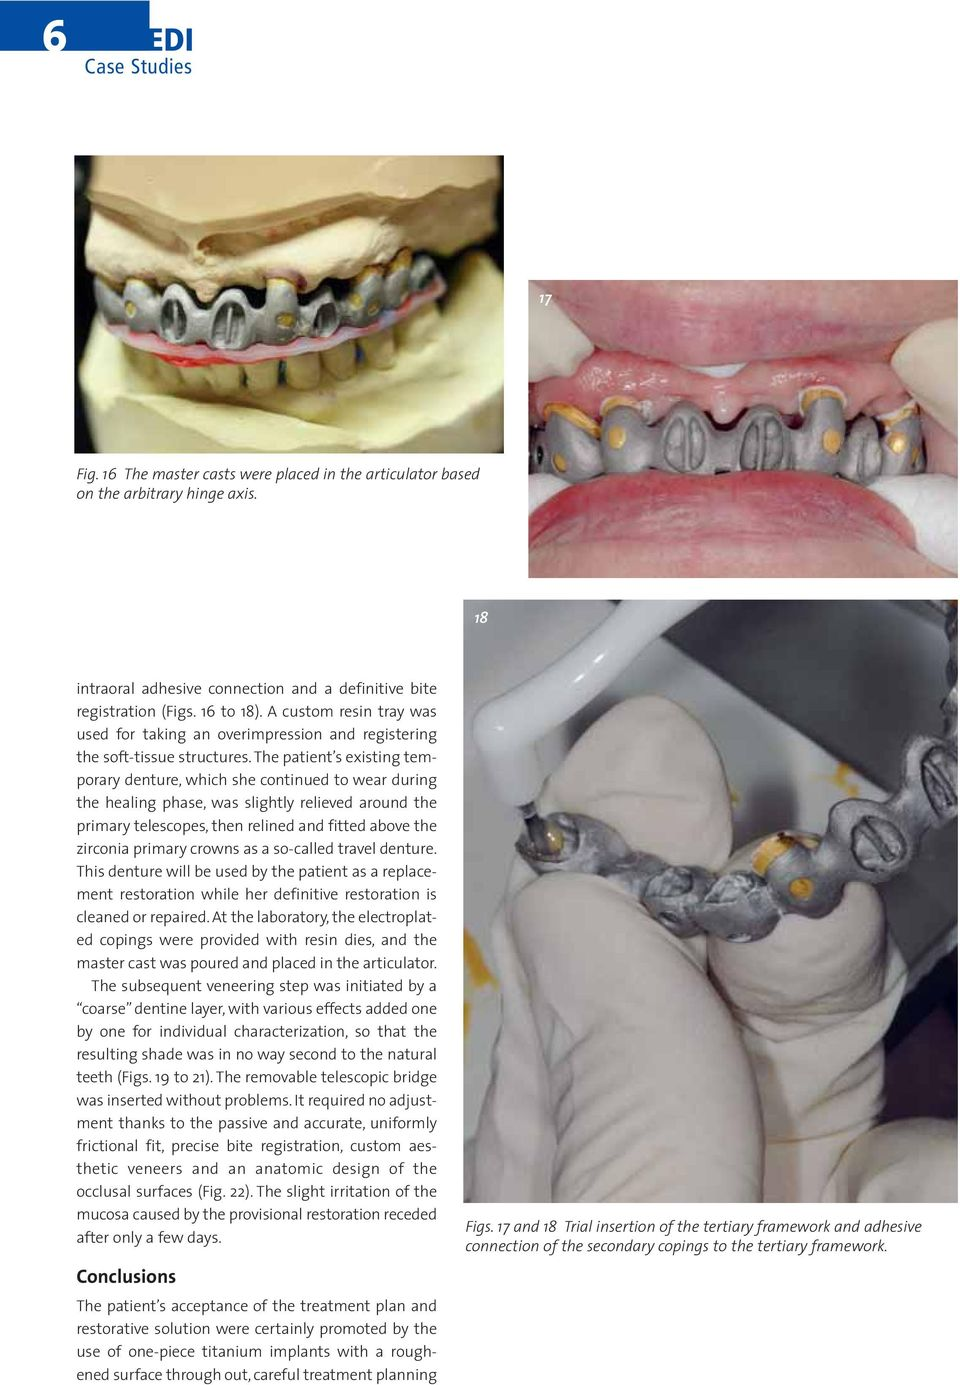 The patient s existing temporary denture, which she continued to wear during the healing phase, was slightly relieved around the primary telescopes, then relined and fitted above the zirconia primary